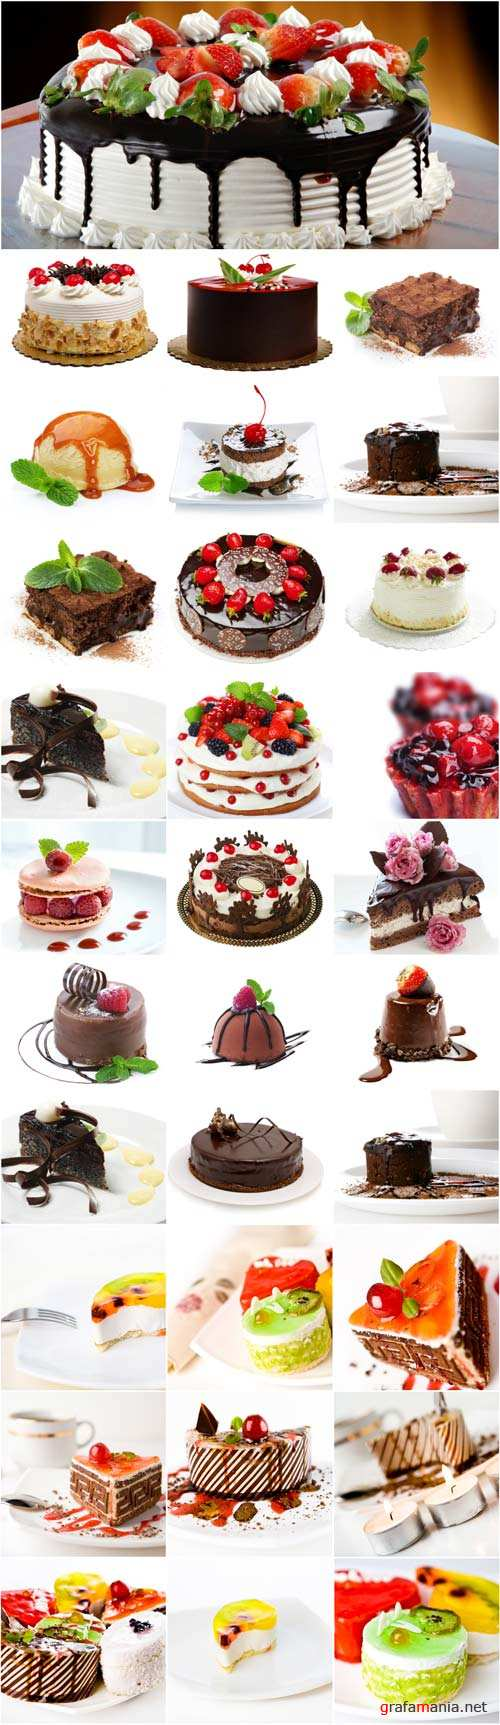 Sweet dessert - cakes and pies